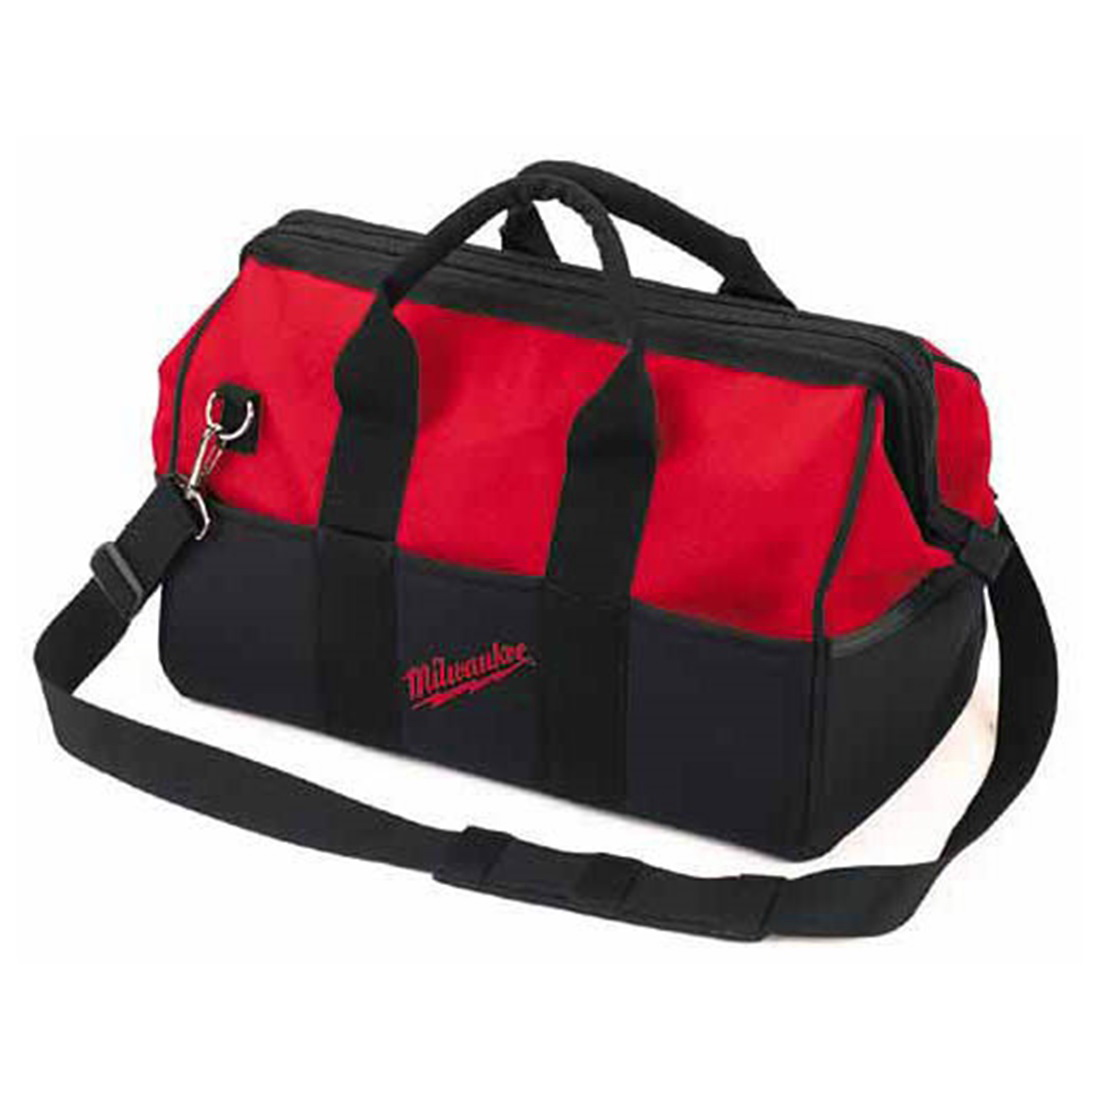 Small Contractor Bag